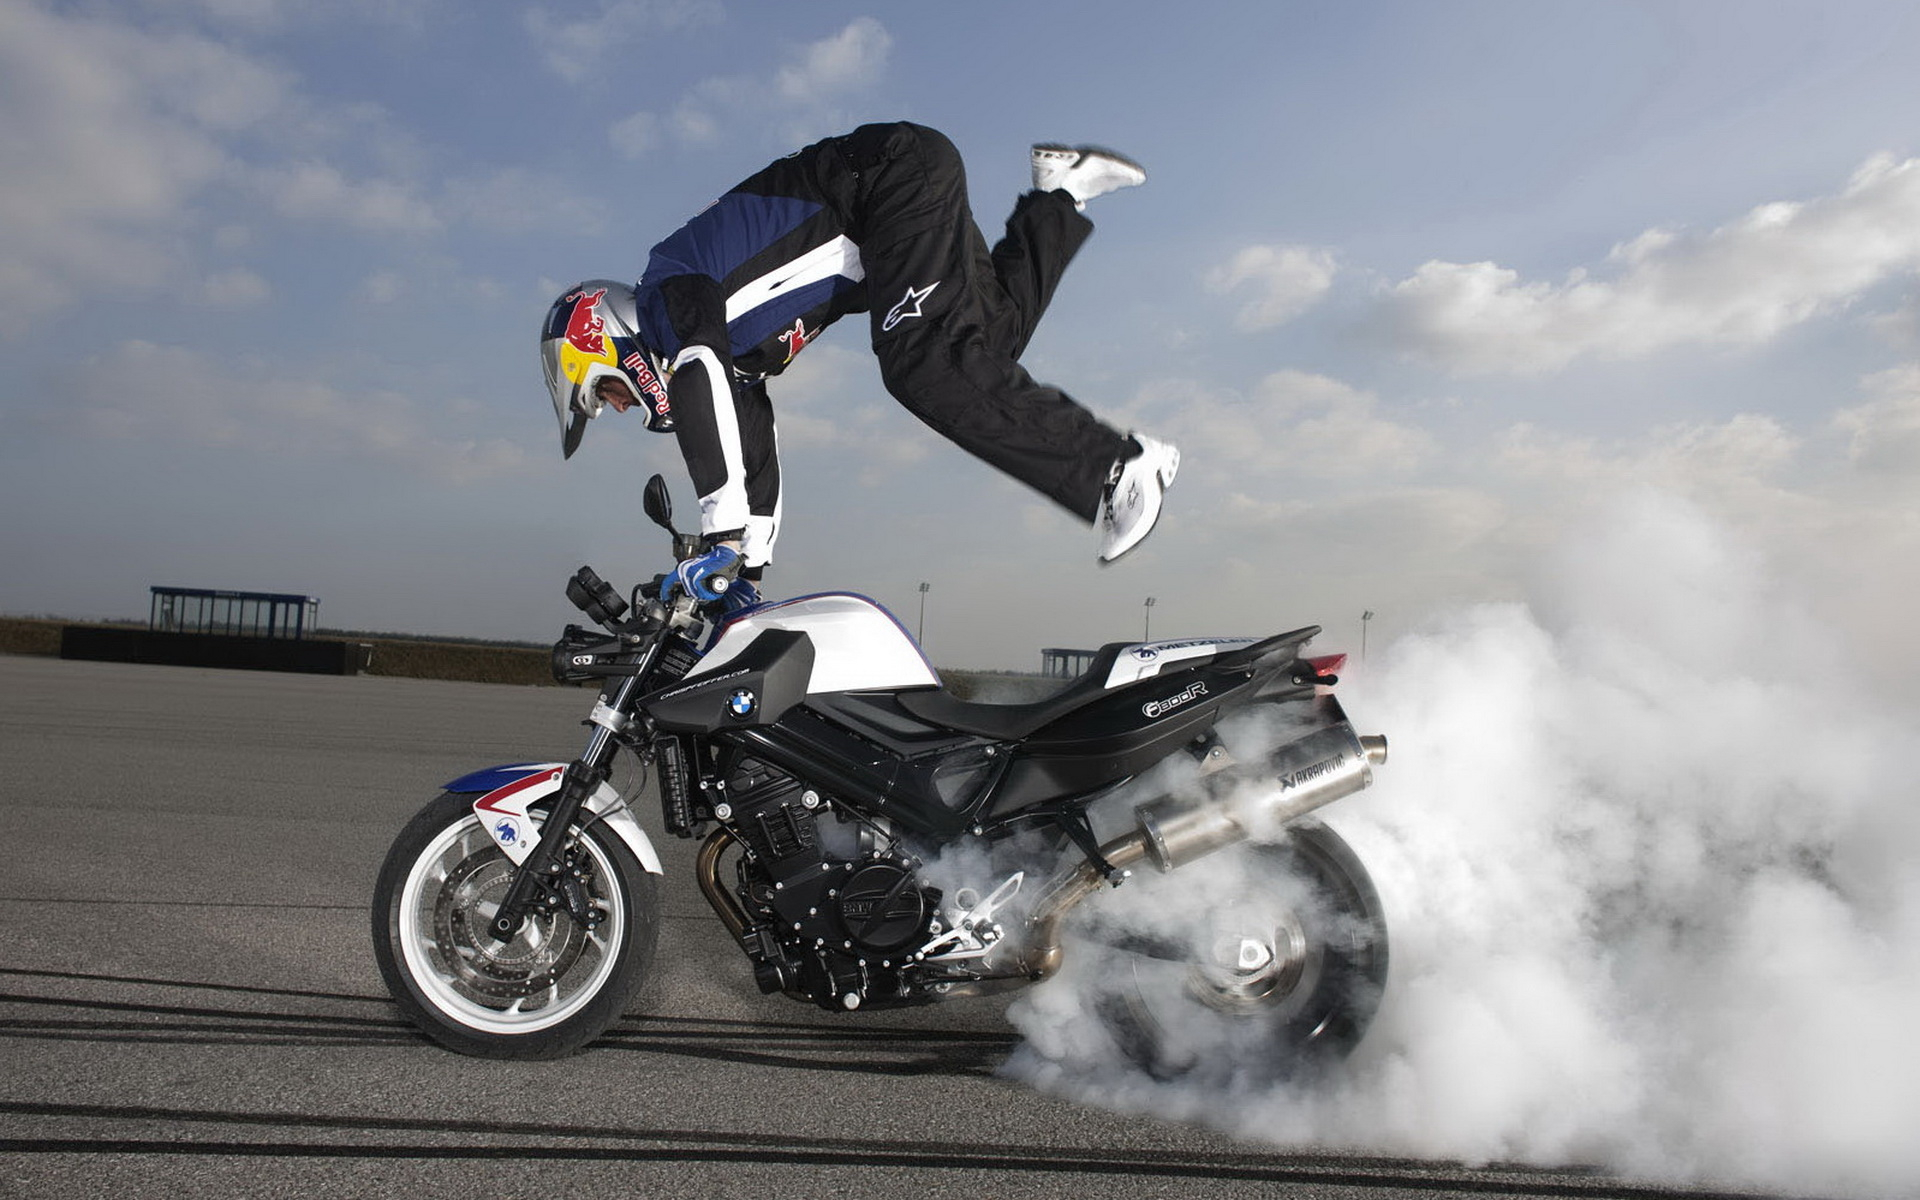 Blue Bike Stunt Hd Wallpaper: WallpaperSafari